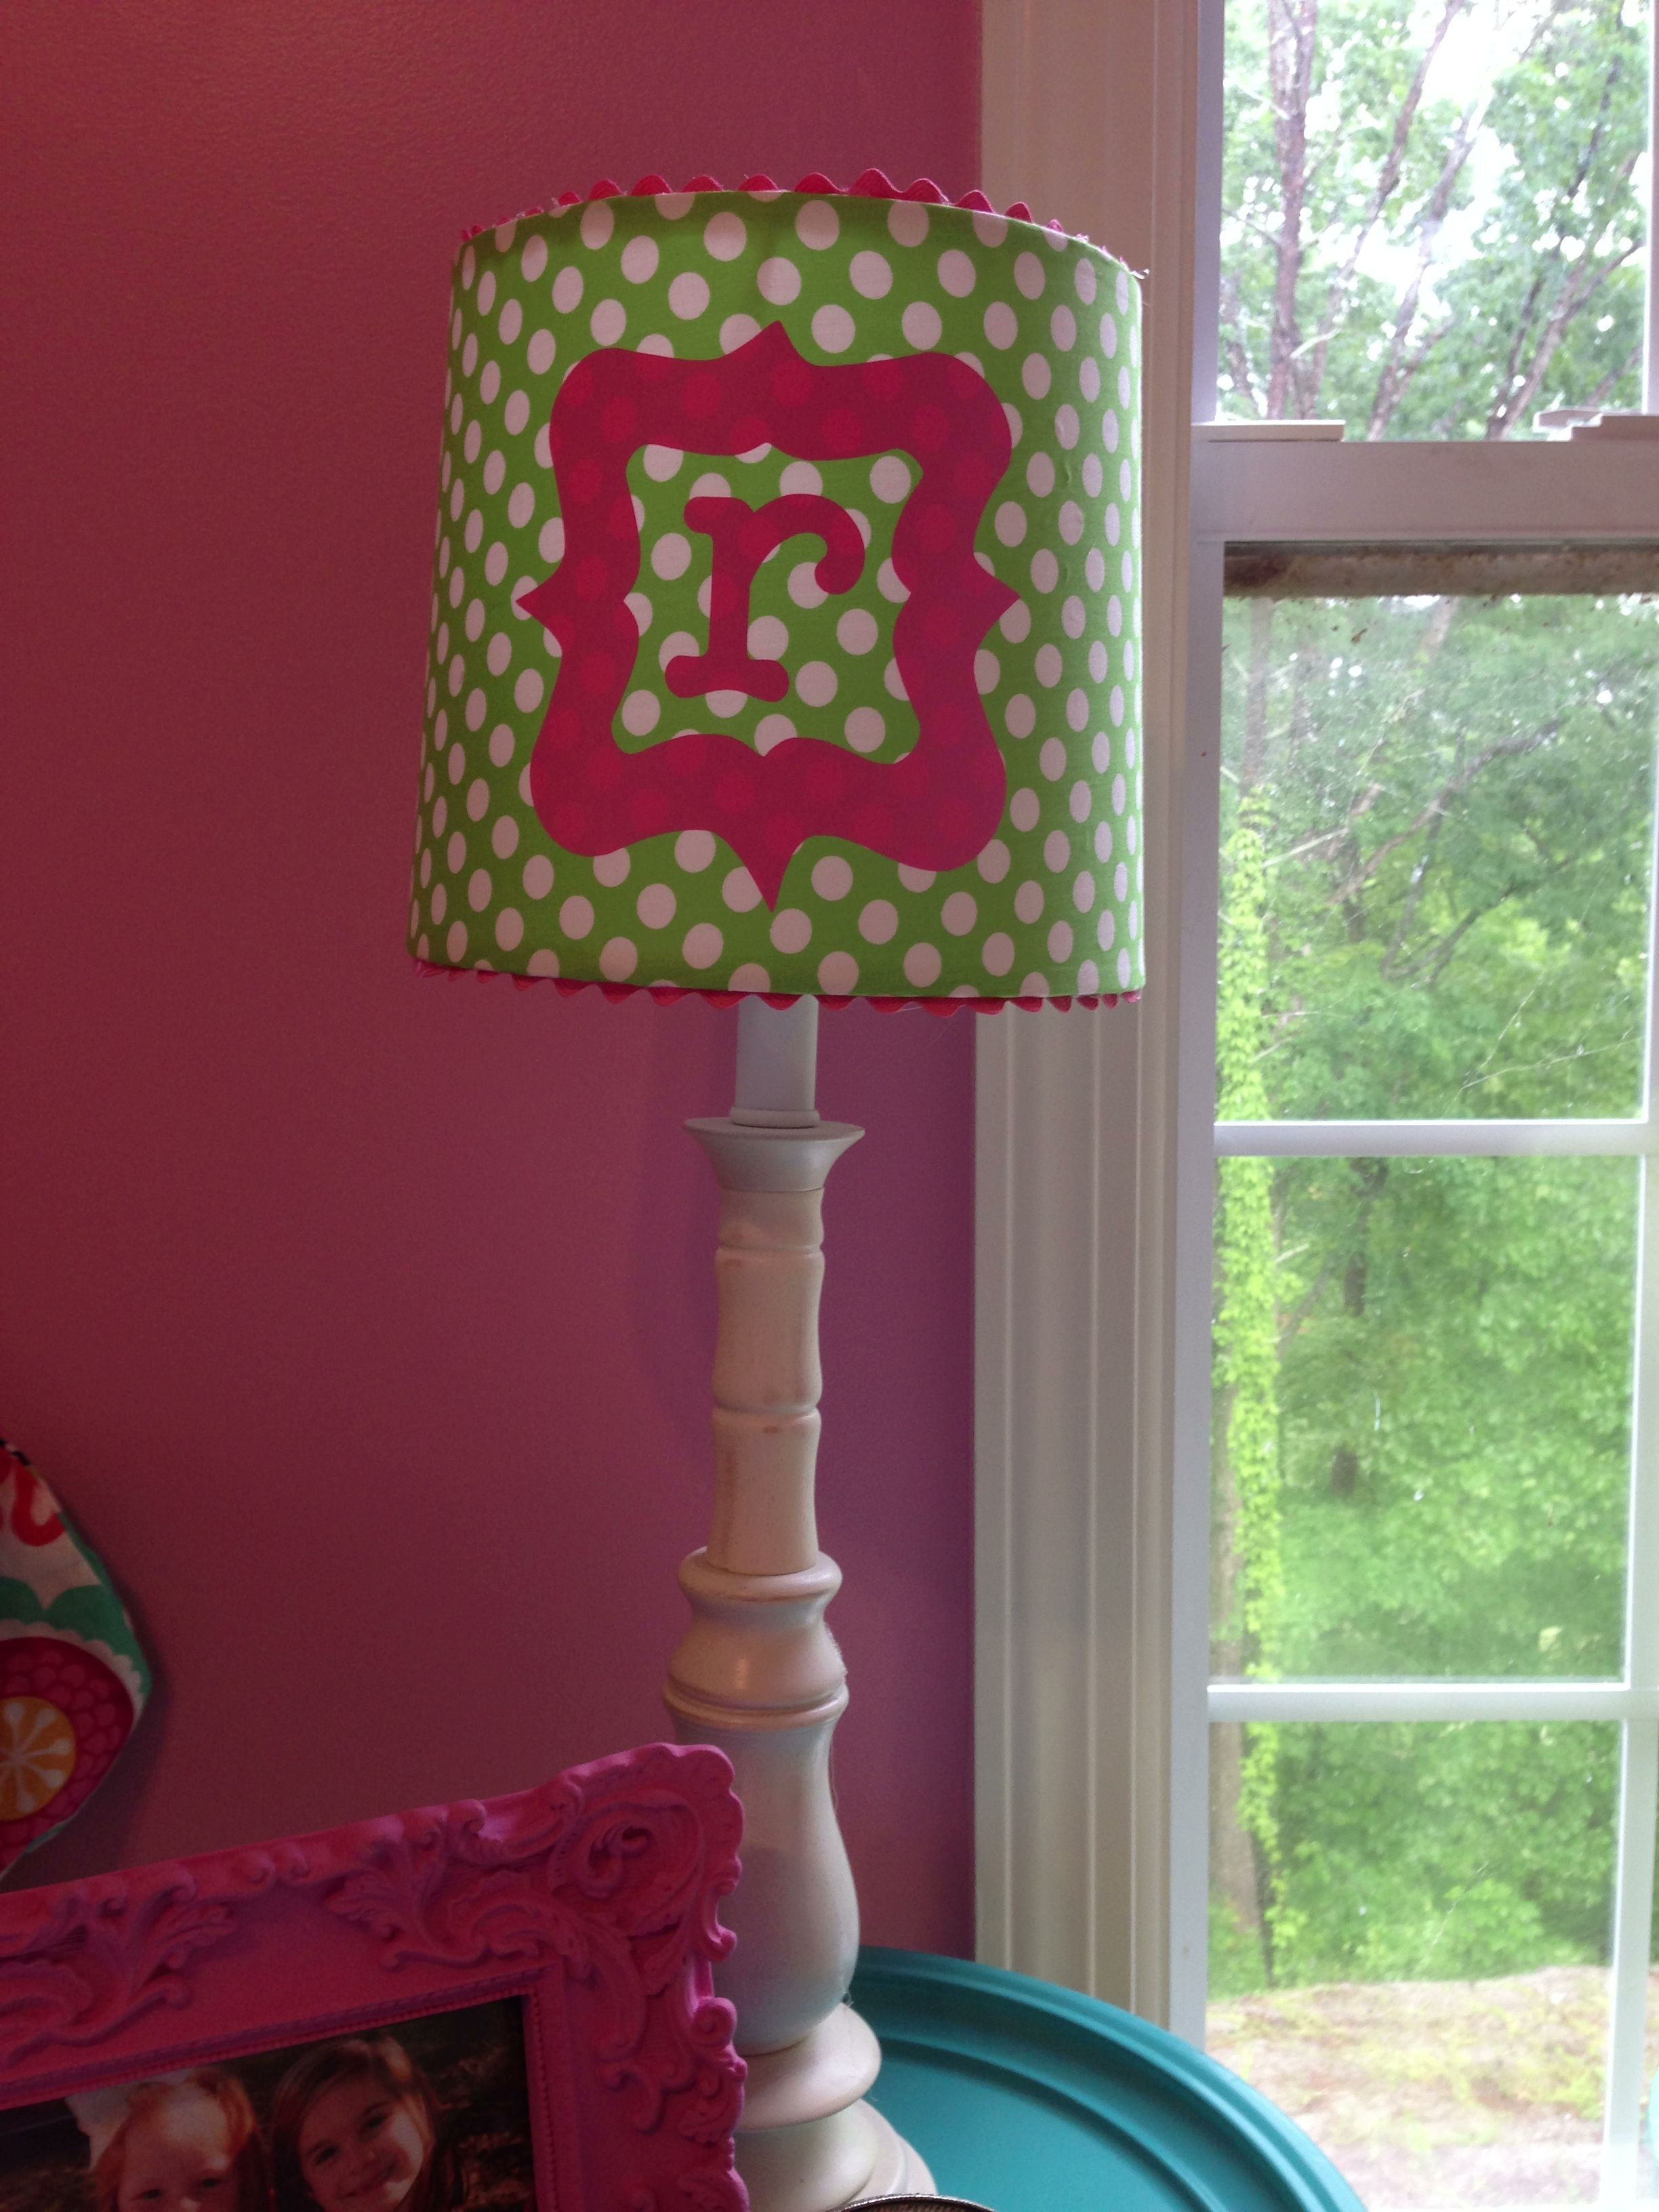 Hobby Lobby Lamp Shades Extraordinary Self Adhesive Lamp Shade From Hobby Lobby With A Vinyl Design From 2018